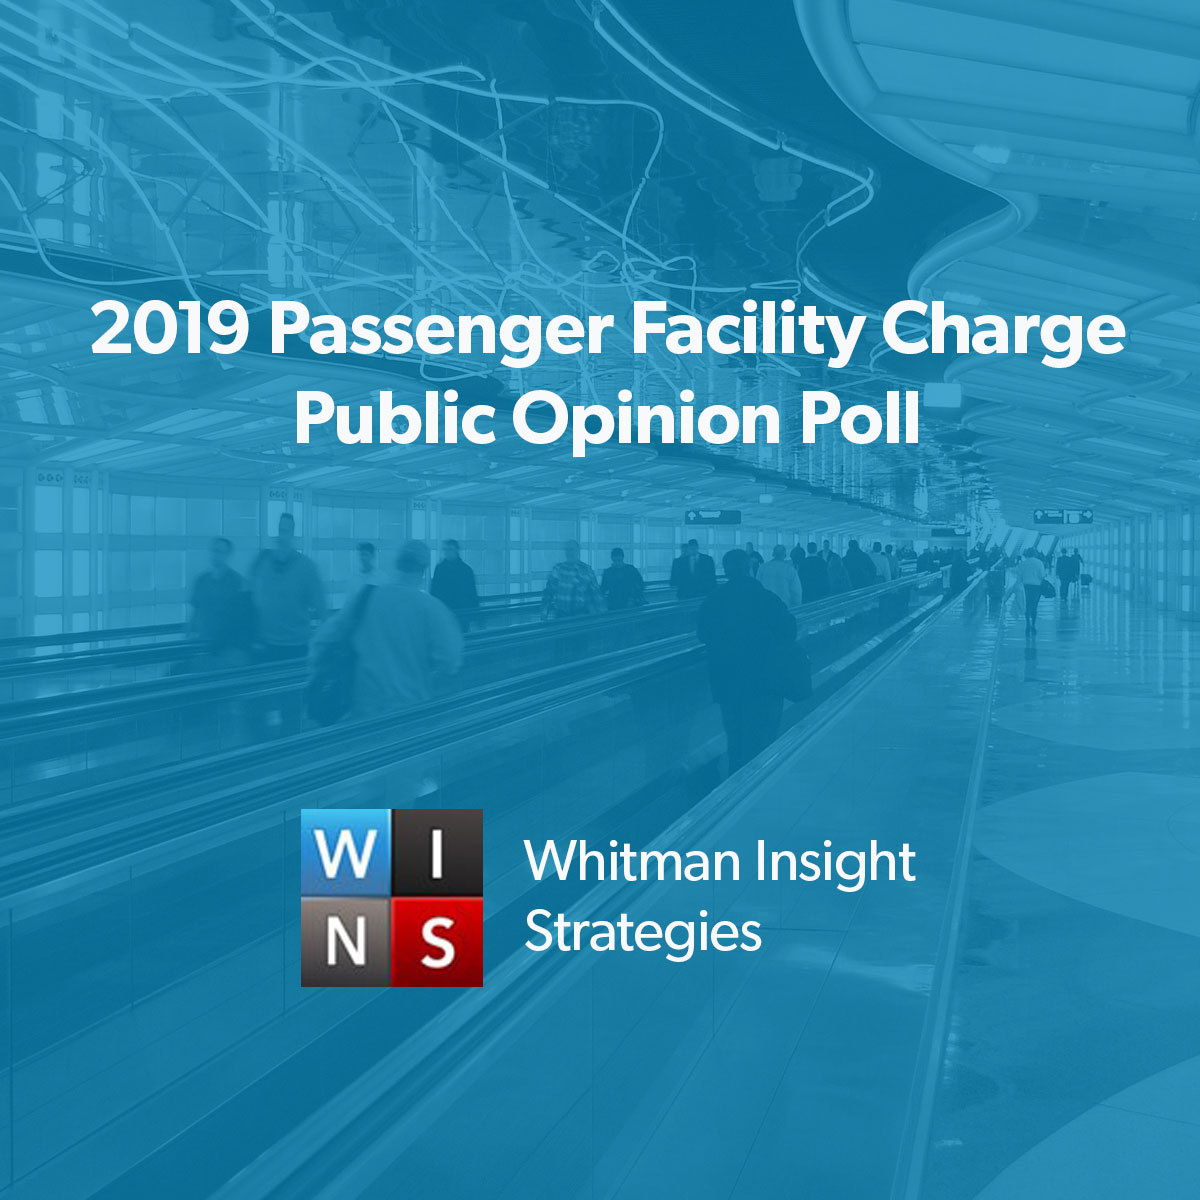 2019 Passenger Facility Charge Public Opinion Poll